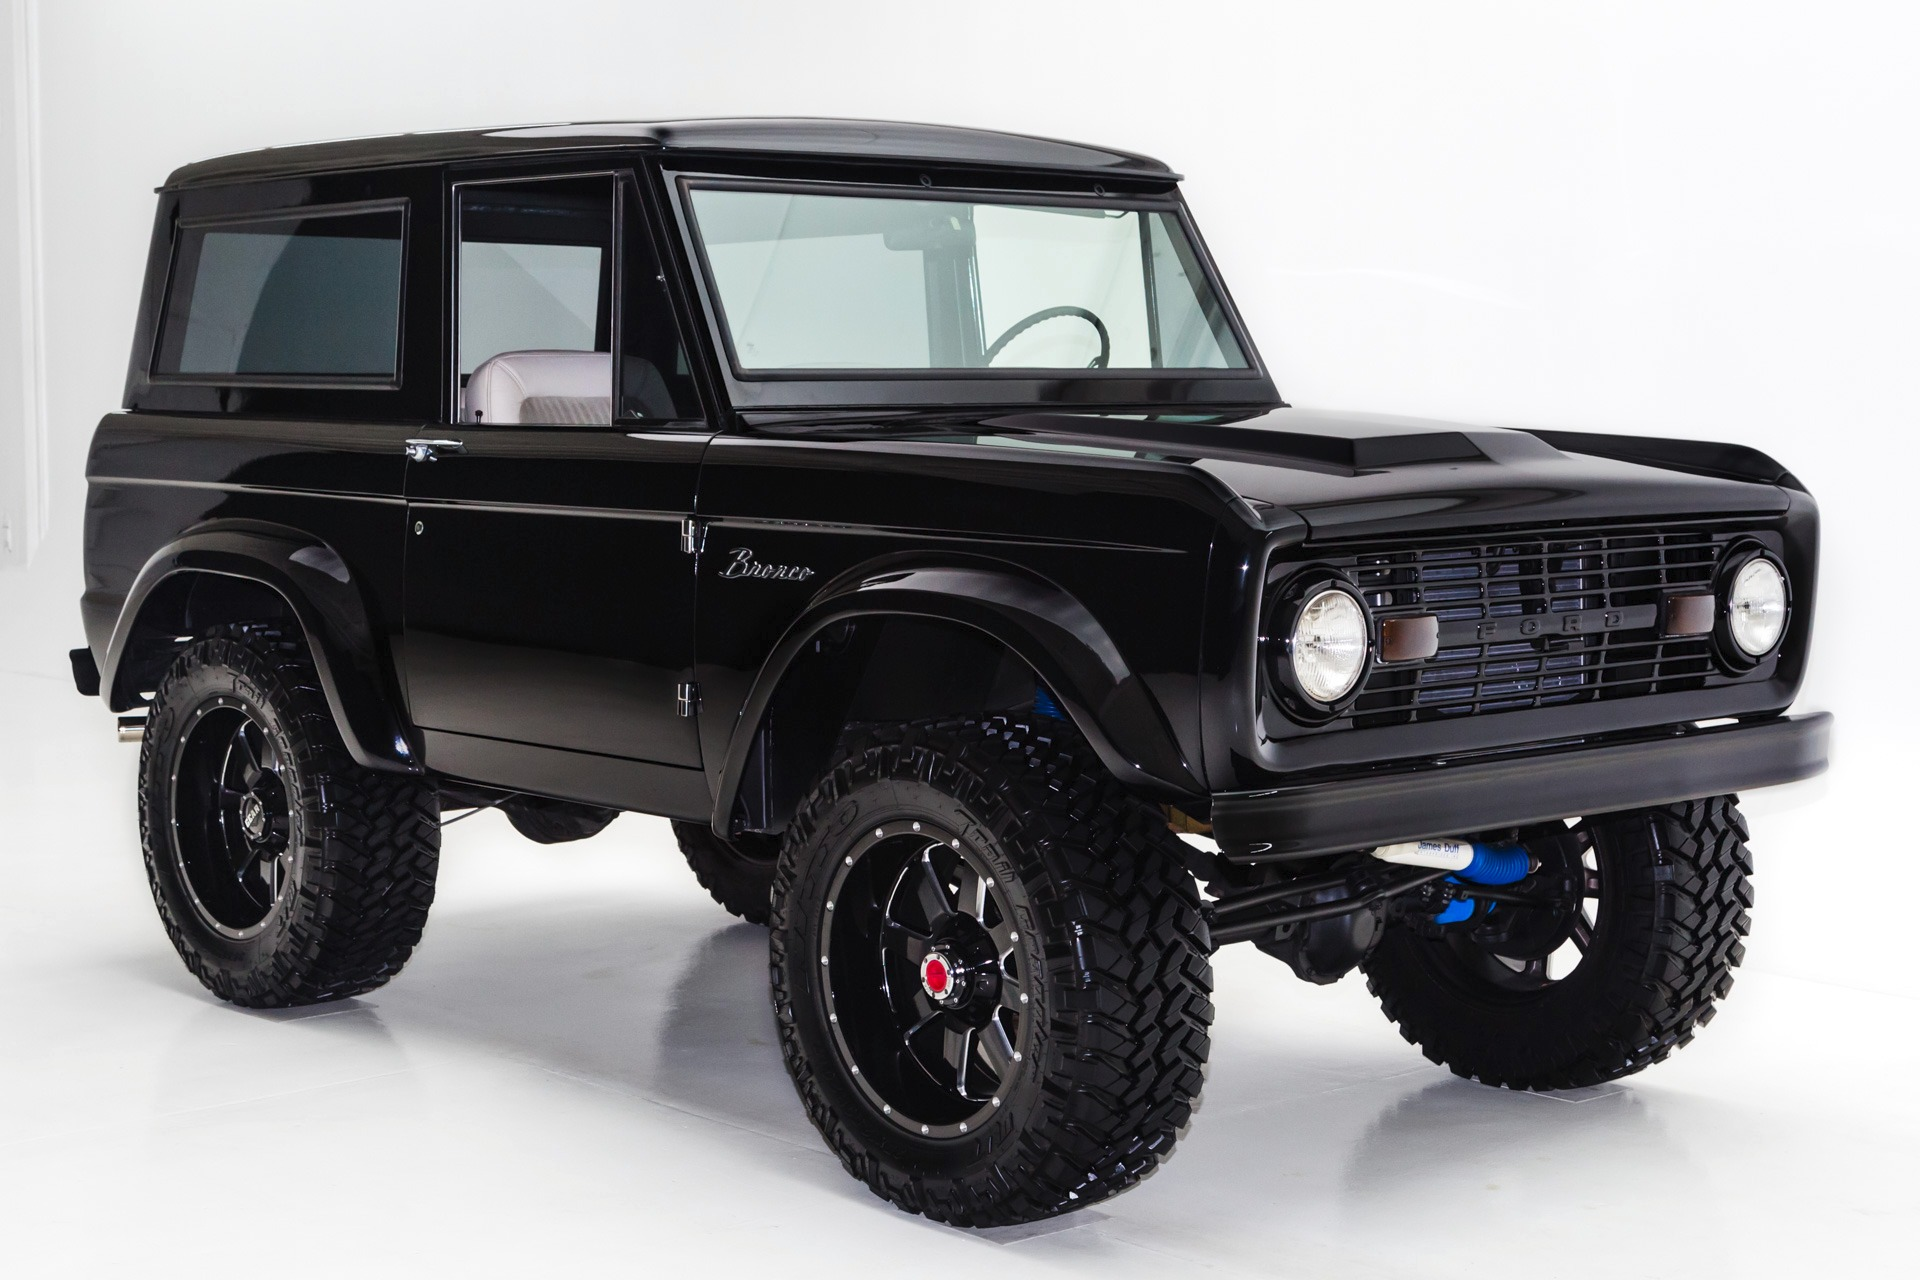 When Will The New Ford Bronco Be Available >> 1977 Ford Bronco Jet Black Bronco, 302 Lifted